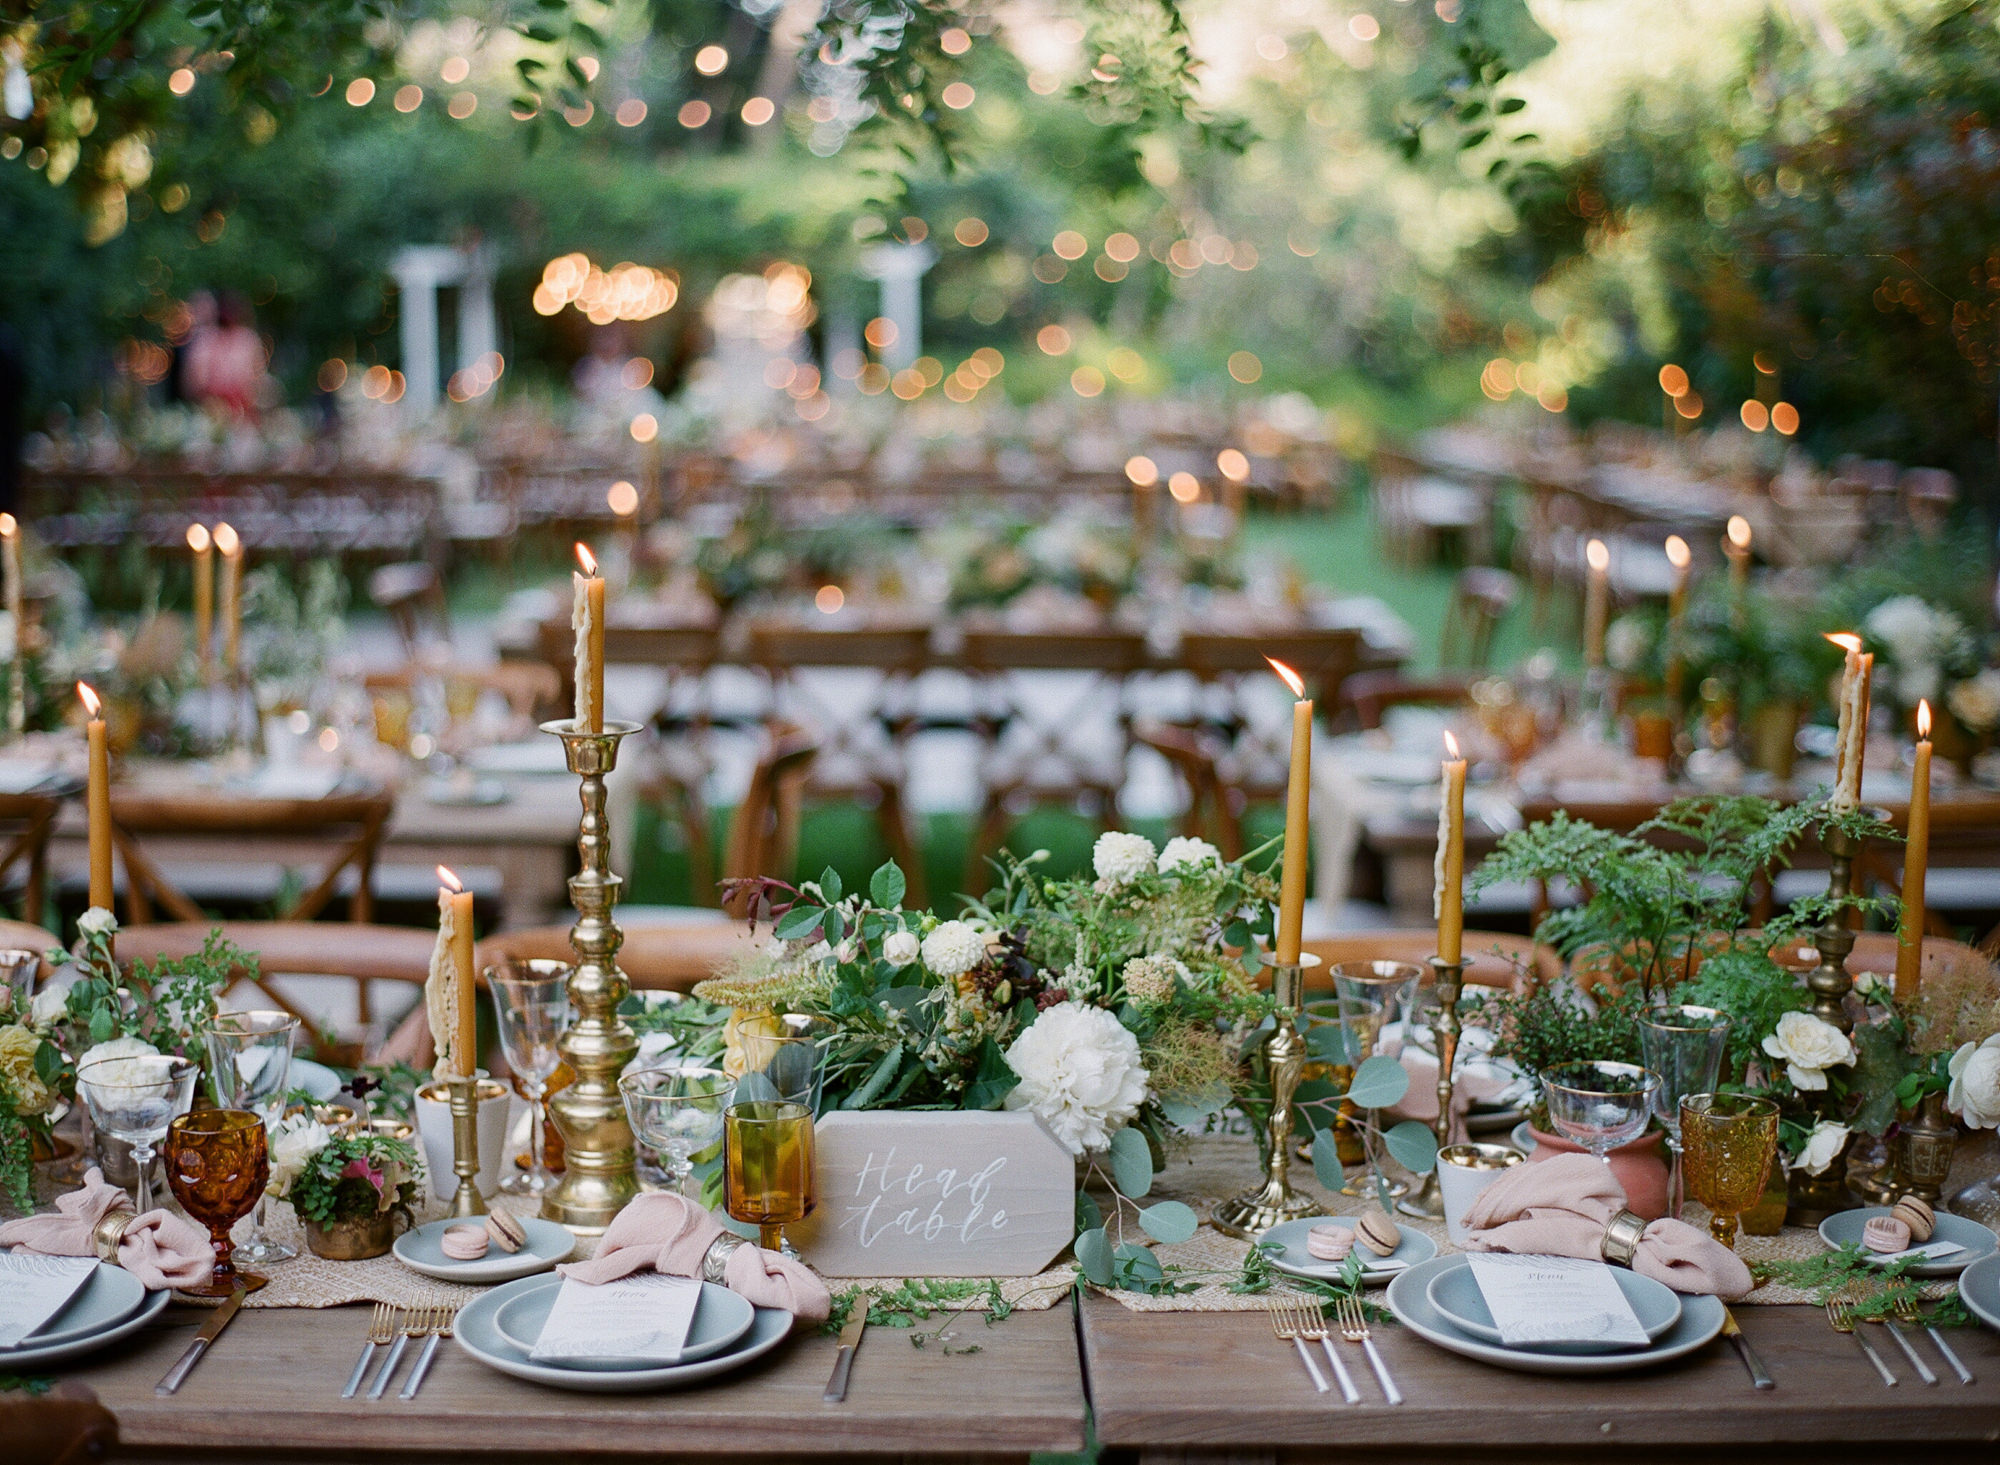 Rustic and elegant reception with wood table and brass candlesticks - Greg Finck Photography